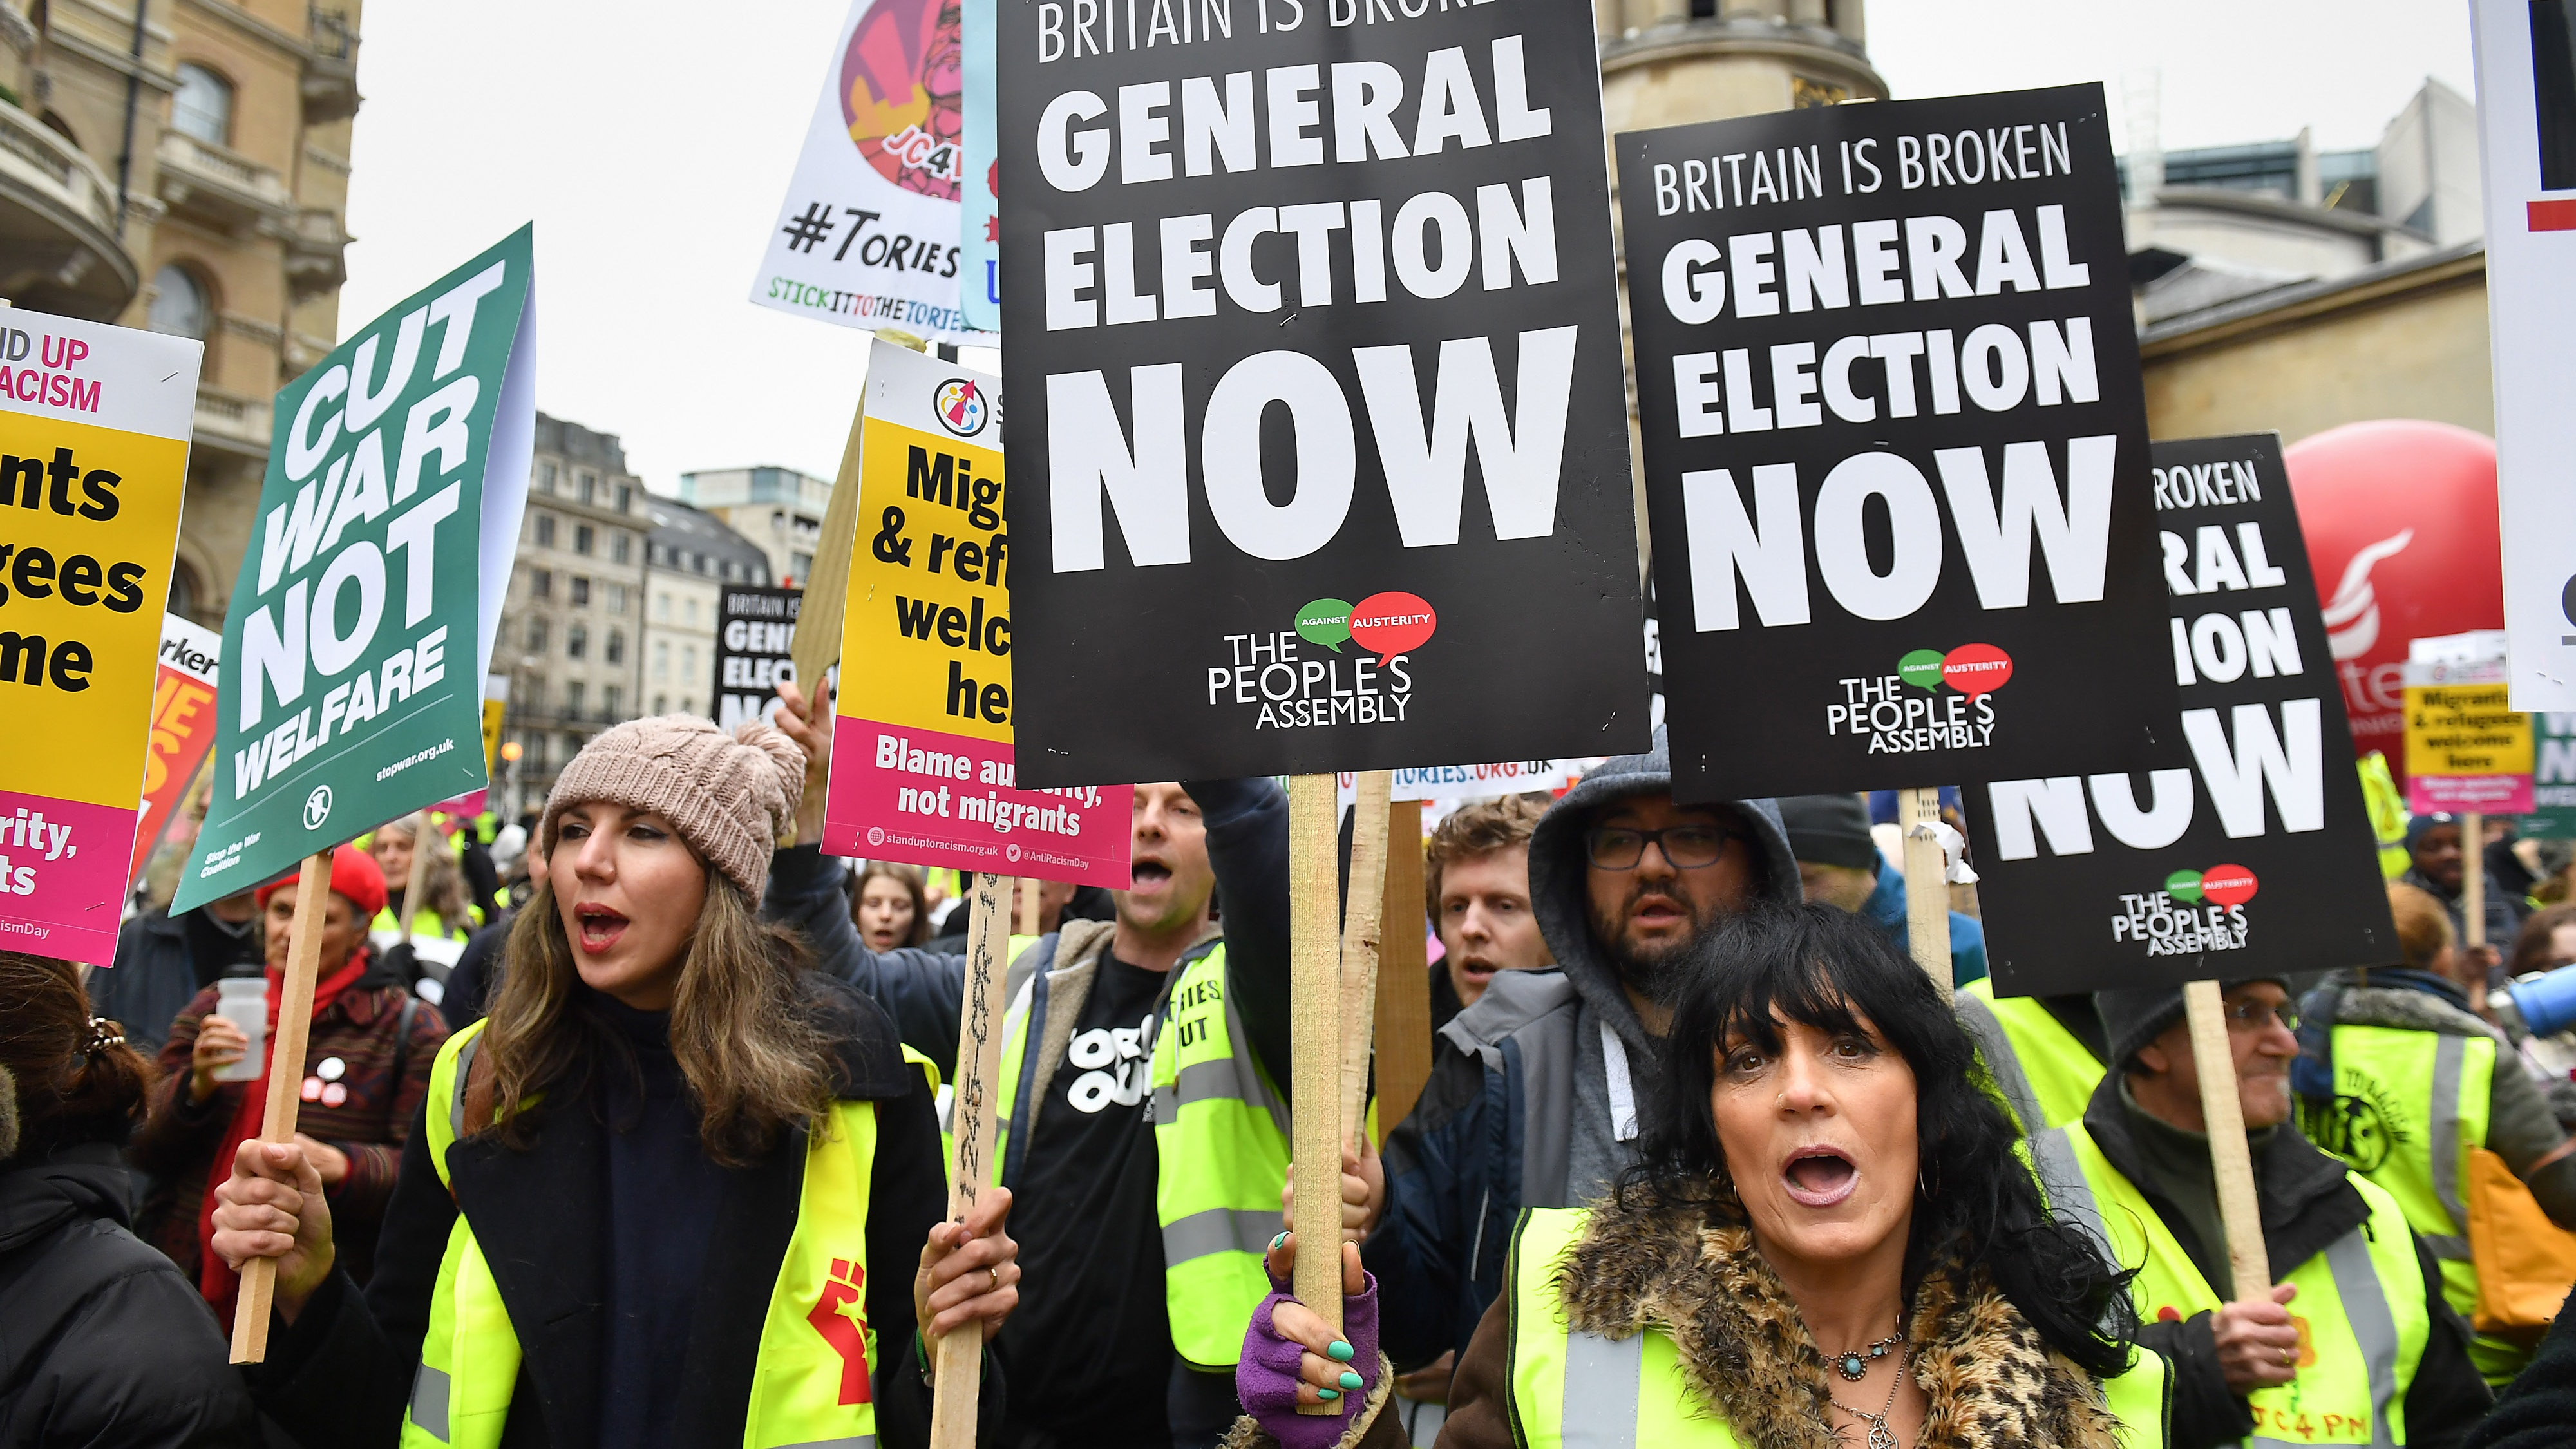 Hundreds inspired by yellow vest movement rally in London